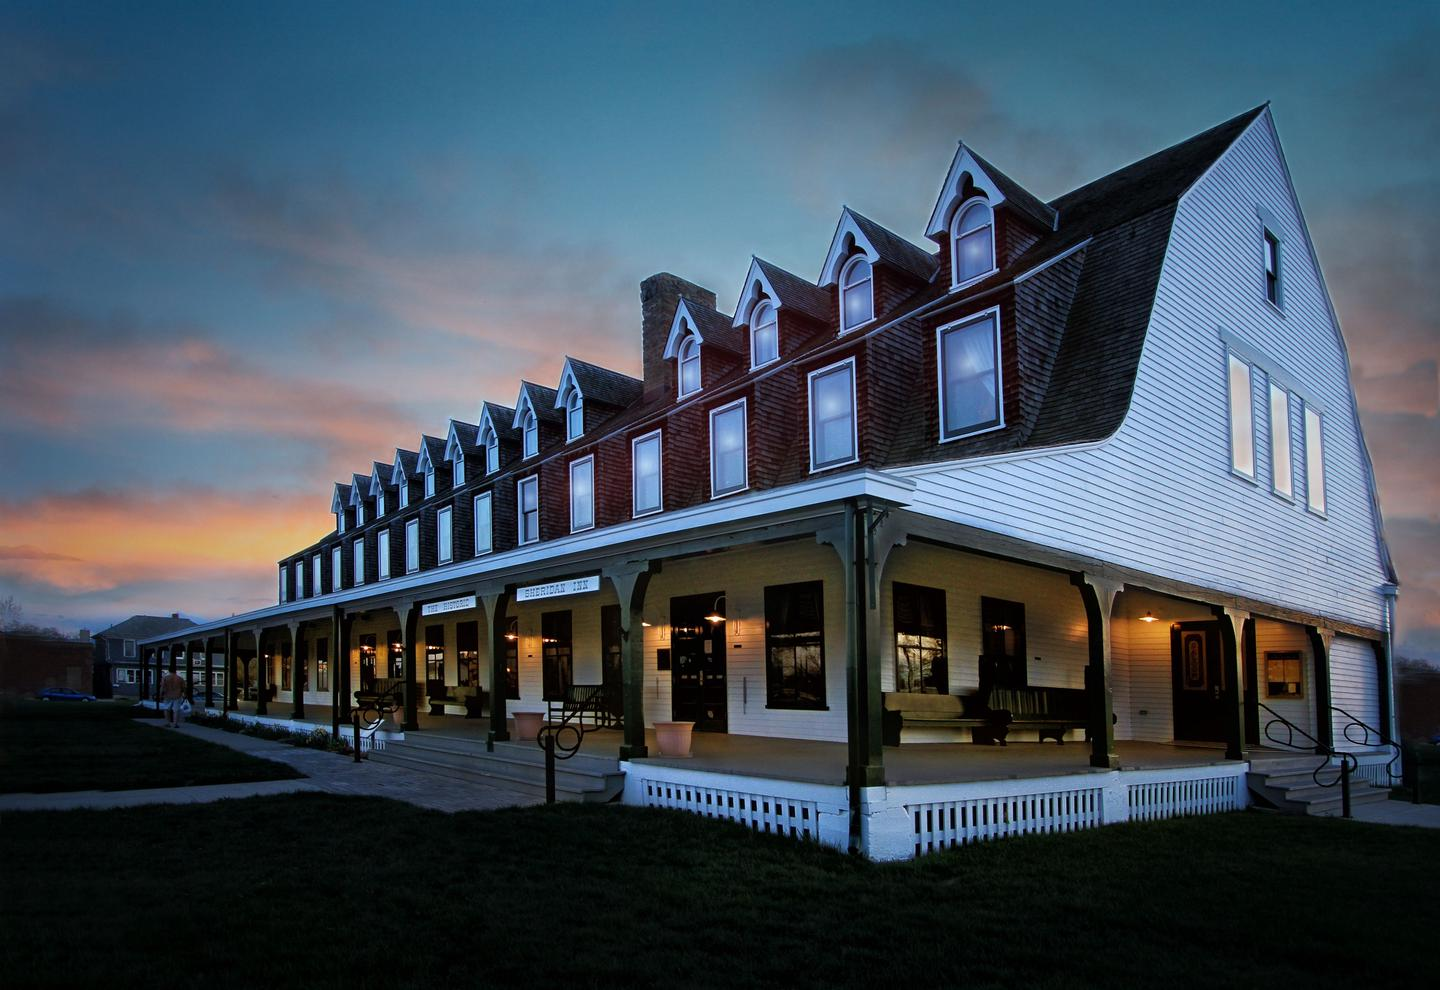 Image of Exterior with Front EntranceA National Historic Landmark, the Sheridan Inn has been entertaining guests since its debut in 1893. One of the inn's greatest claims to fame is that Buffalo Bill Cody managed the location shortly after its original opening.